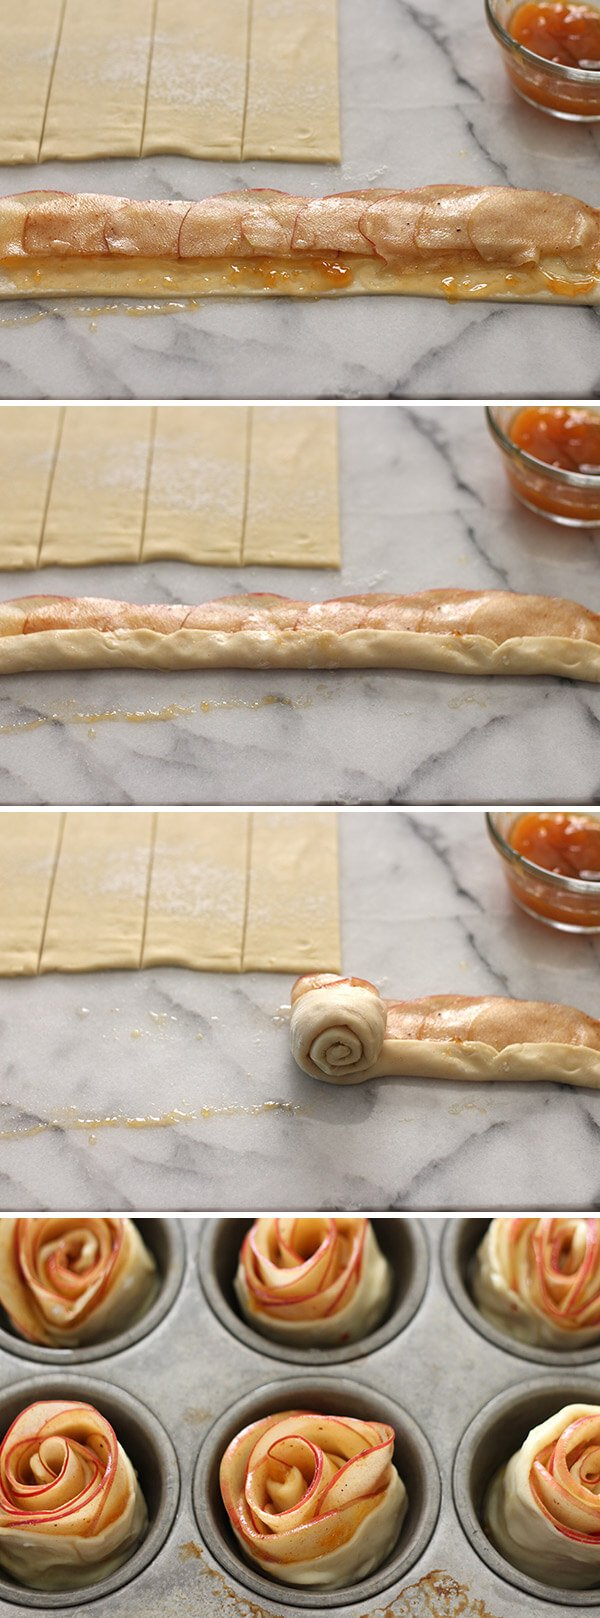 How to Make Apple Roses with this simple recipe for beautiful and gourmet individual apple pastries. Can be made ahead of time and perfect for Thanksgiving!